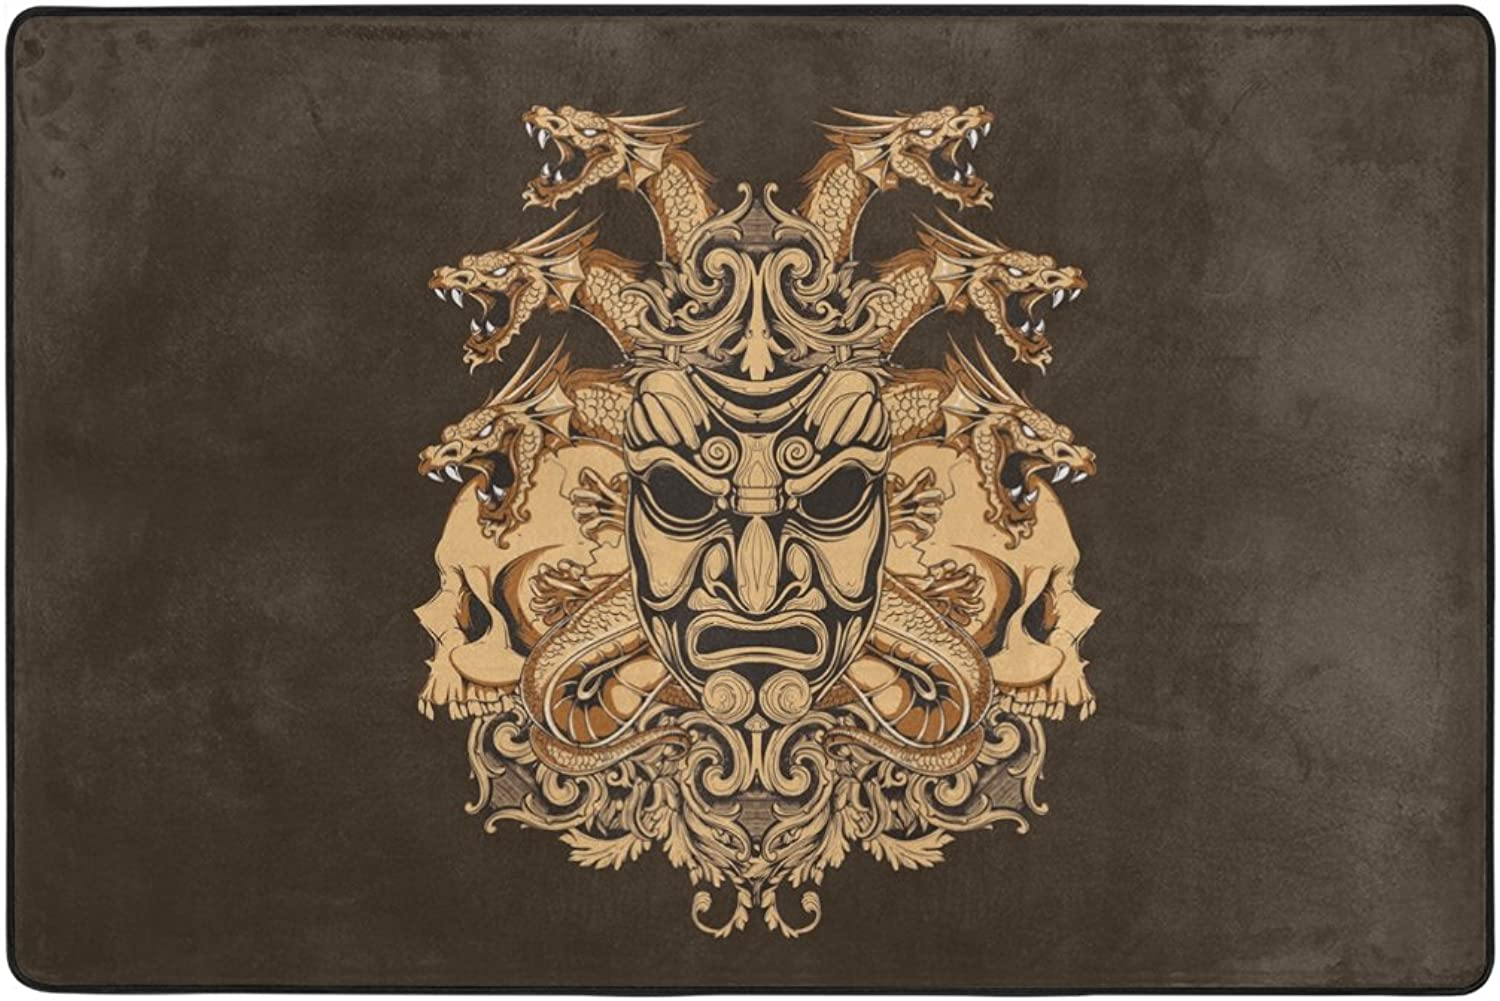 SAVSV Decorative Lightweight Printed Fierce Dragon Skeleton Skull Design Morden Area Rug Carpet Doormat for Hardwood Floors Living Room Bedroom Water-Repellent Non-Slip Soft 6'X 4'& 3'X 2'